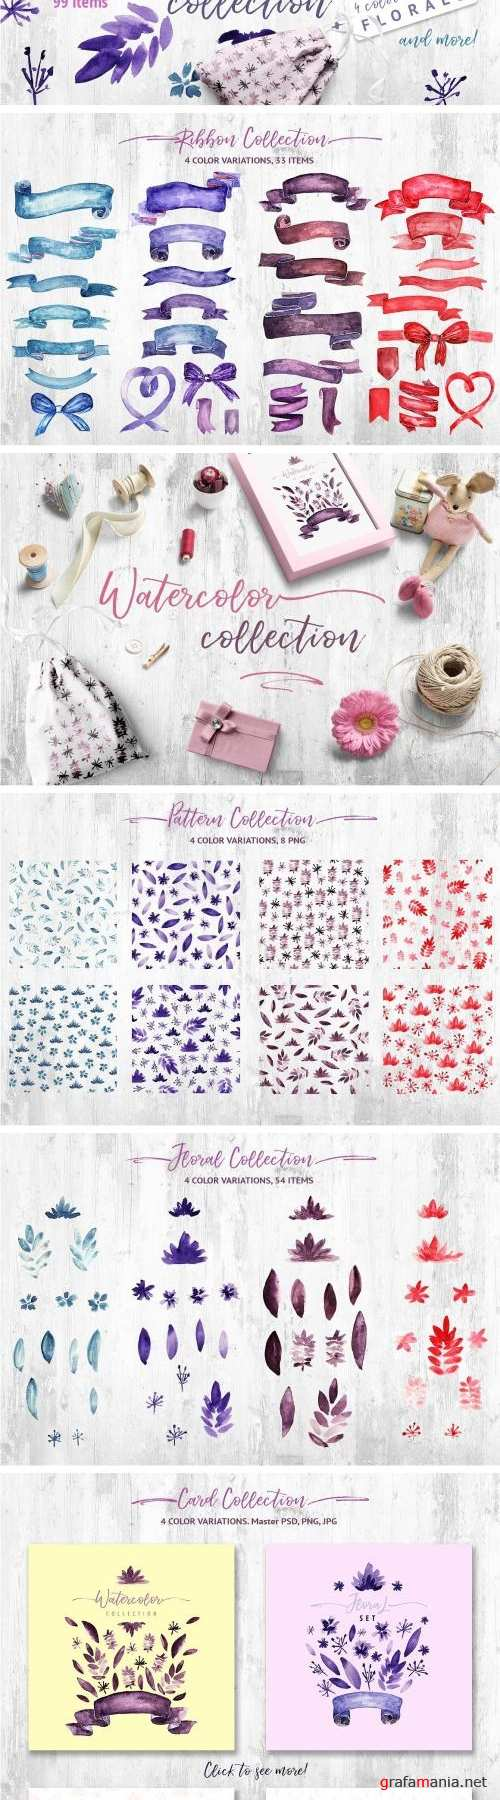 Watercolor Ribbon Collection - 1982659